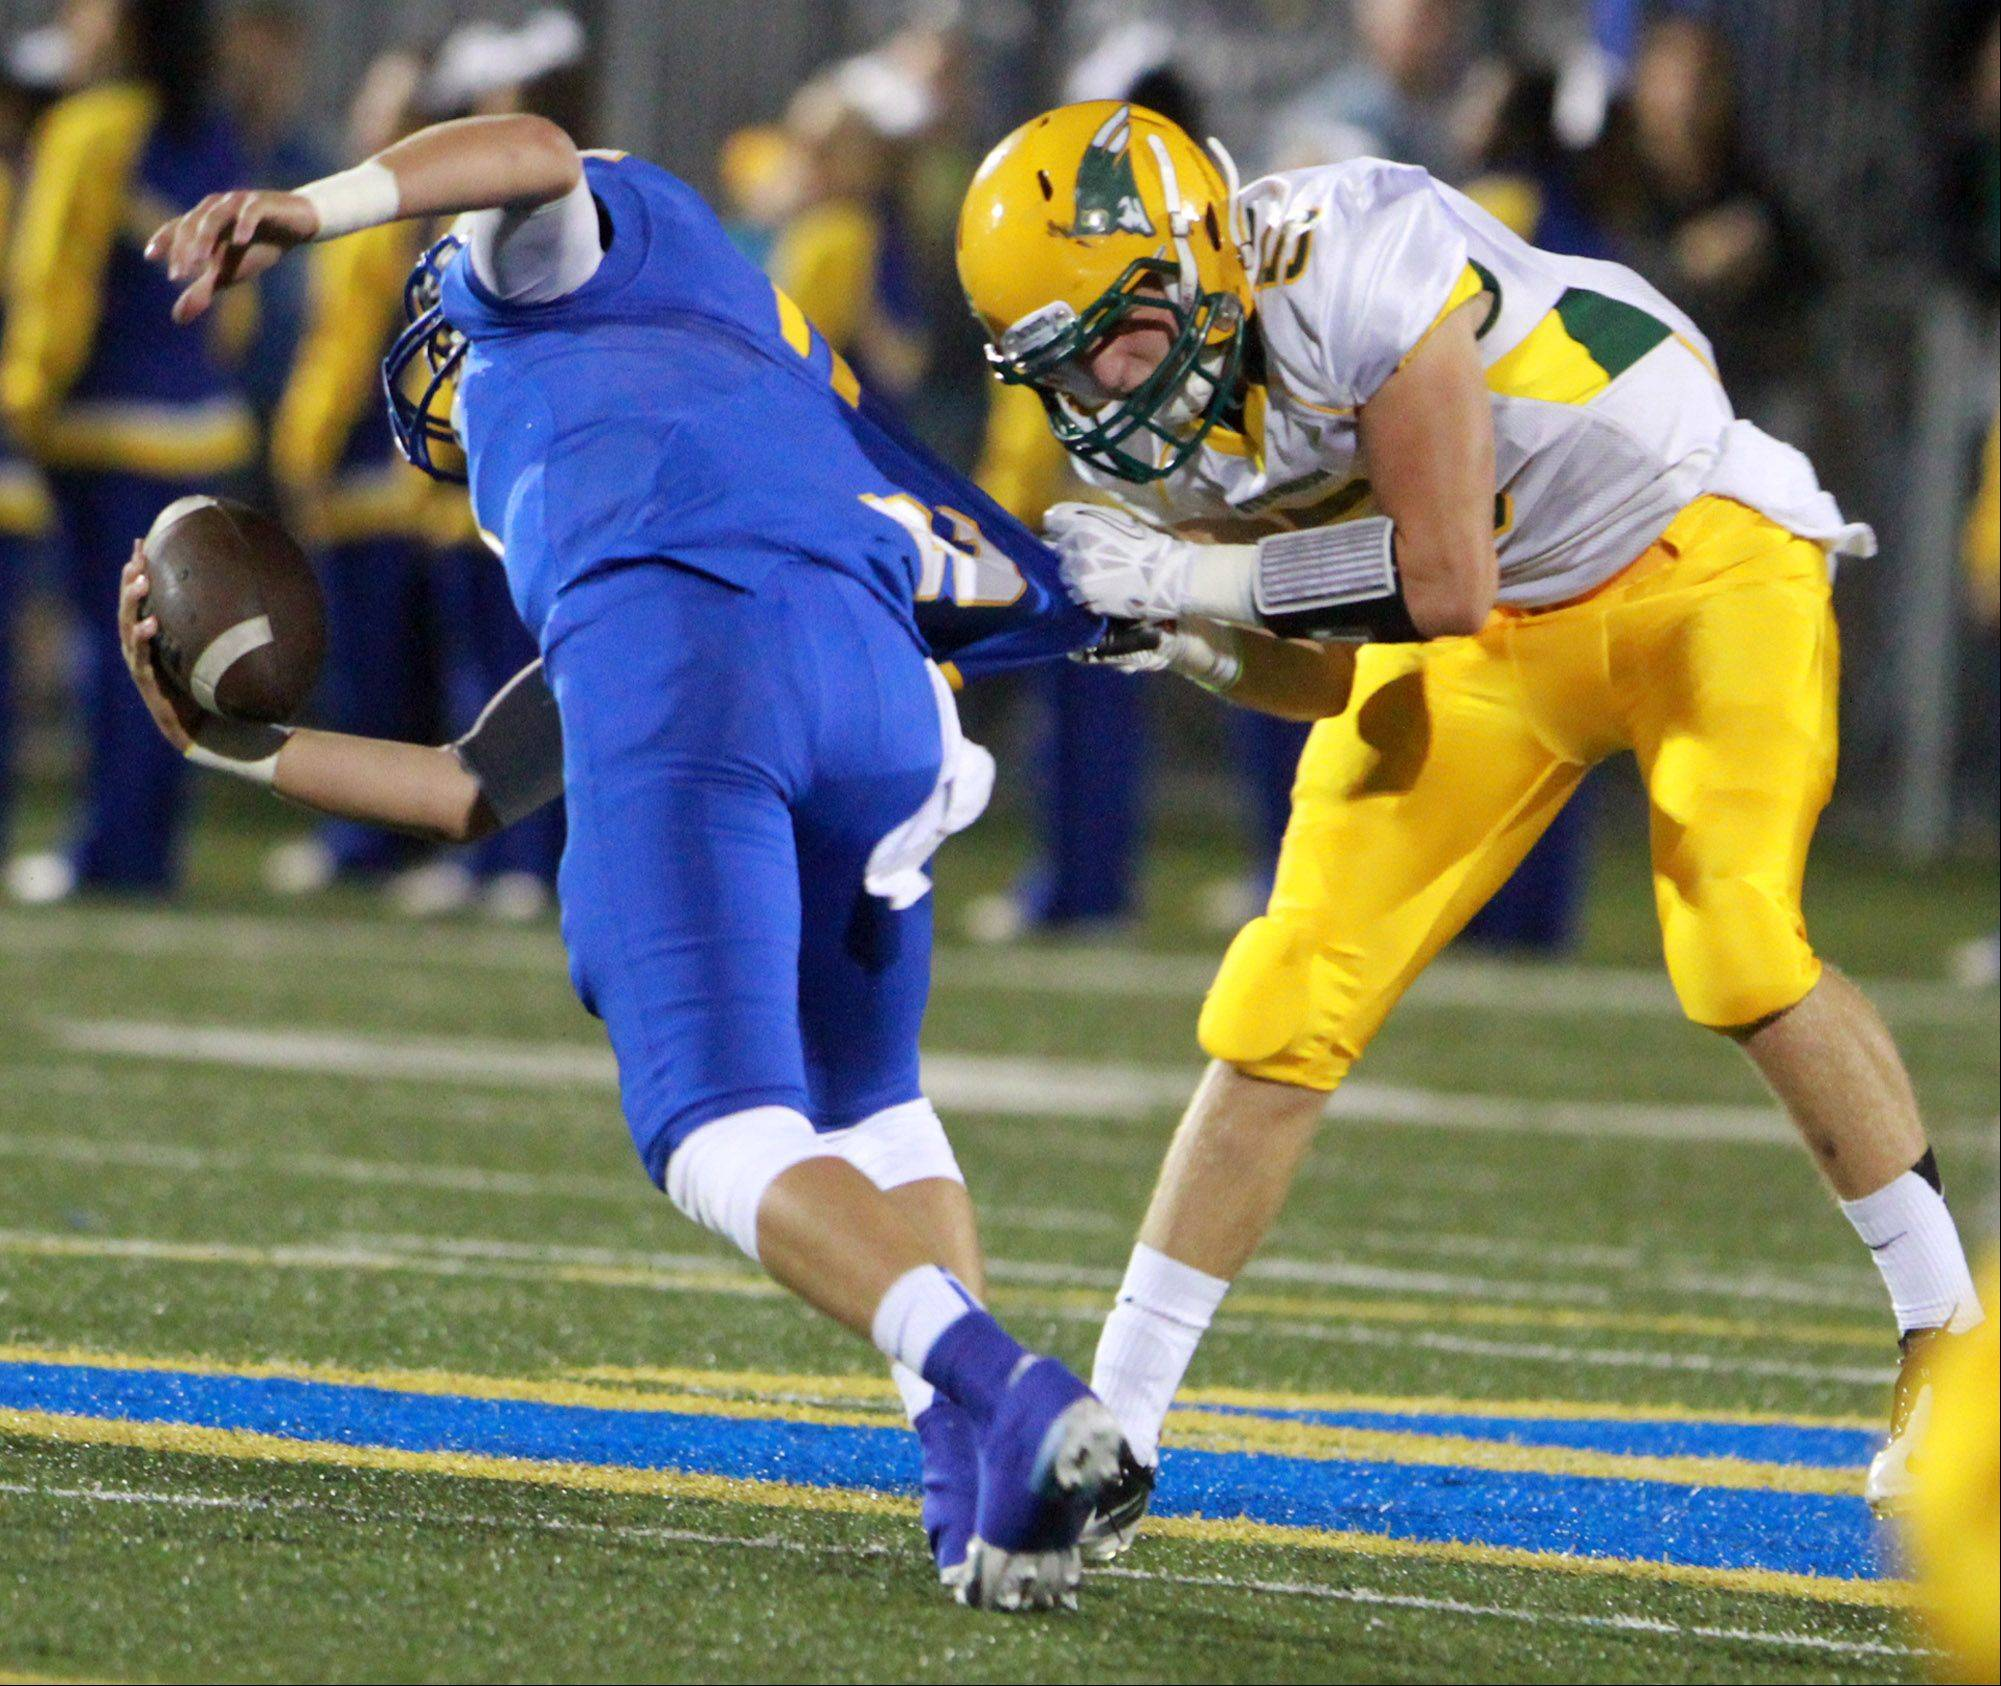 Stevenson's defense stands tall